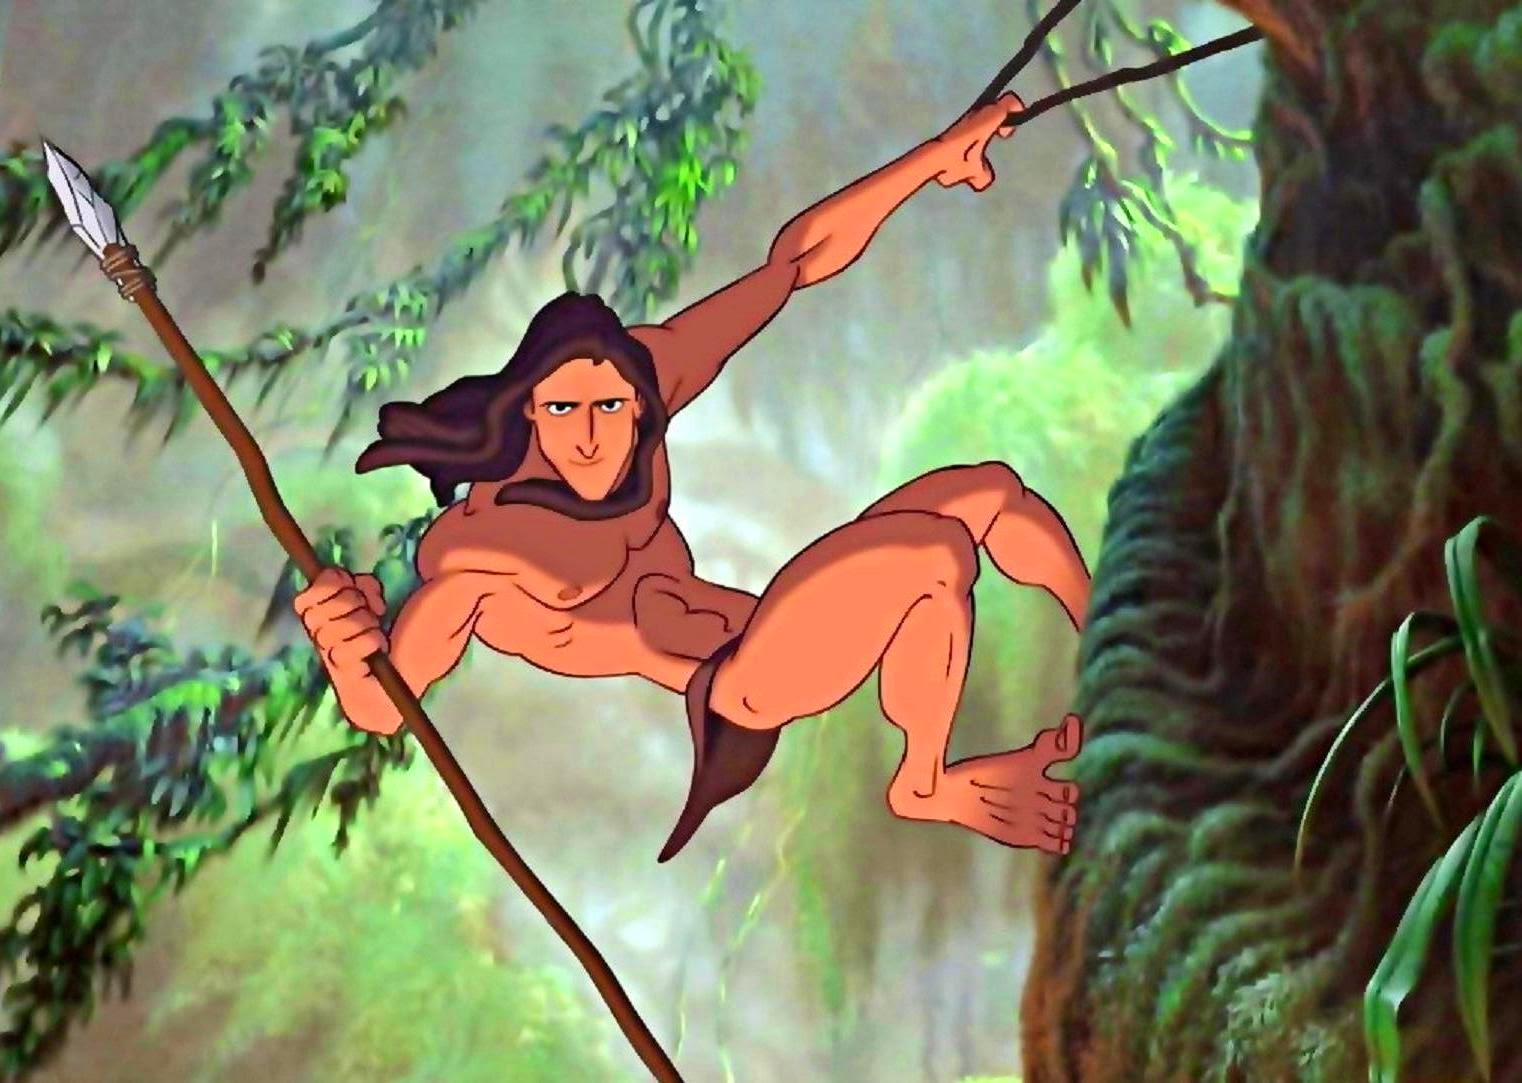 Disney hd wallpapers tarzan jane hd wallpapers - Tarzan wallpaper ...